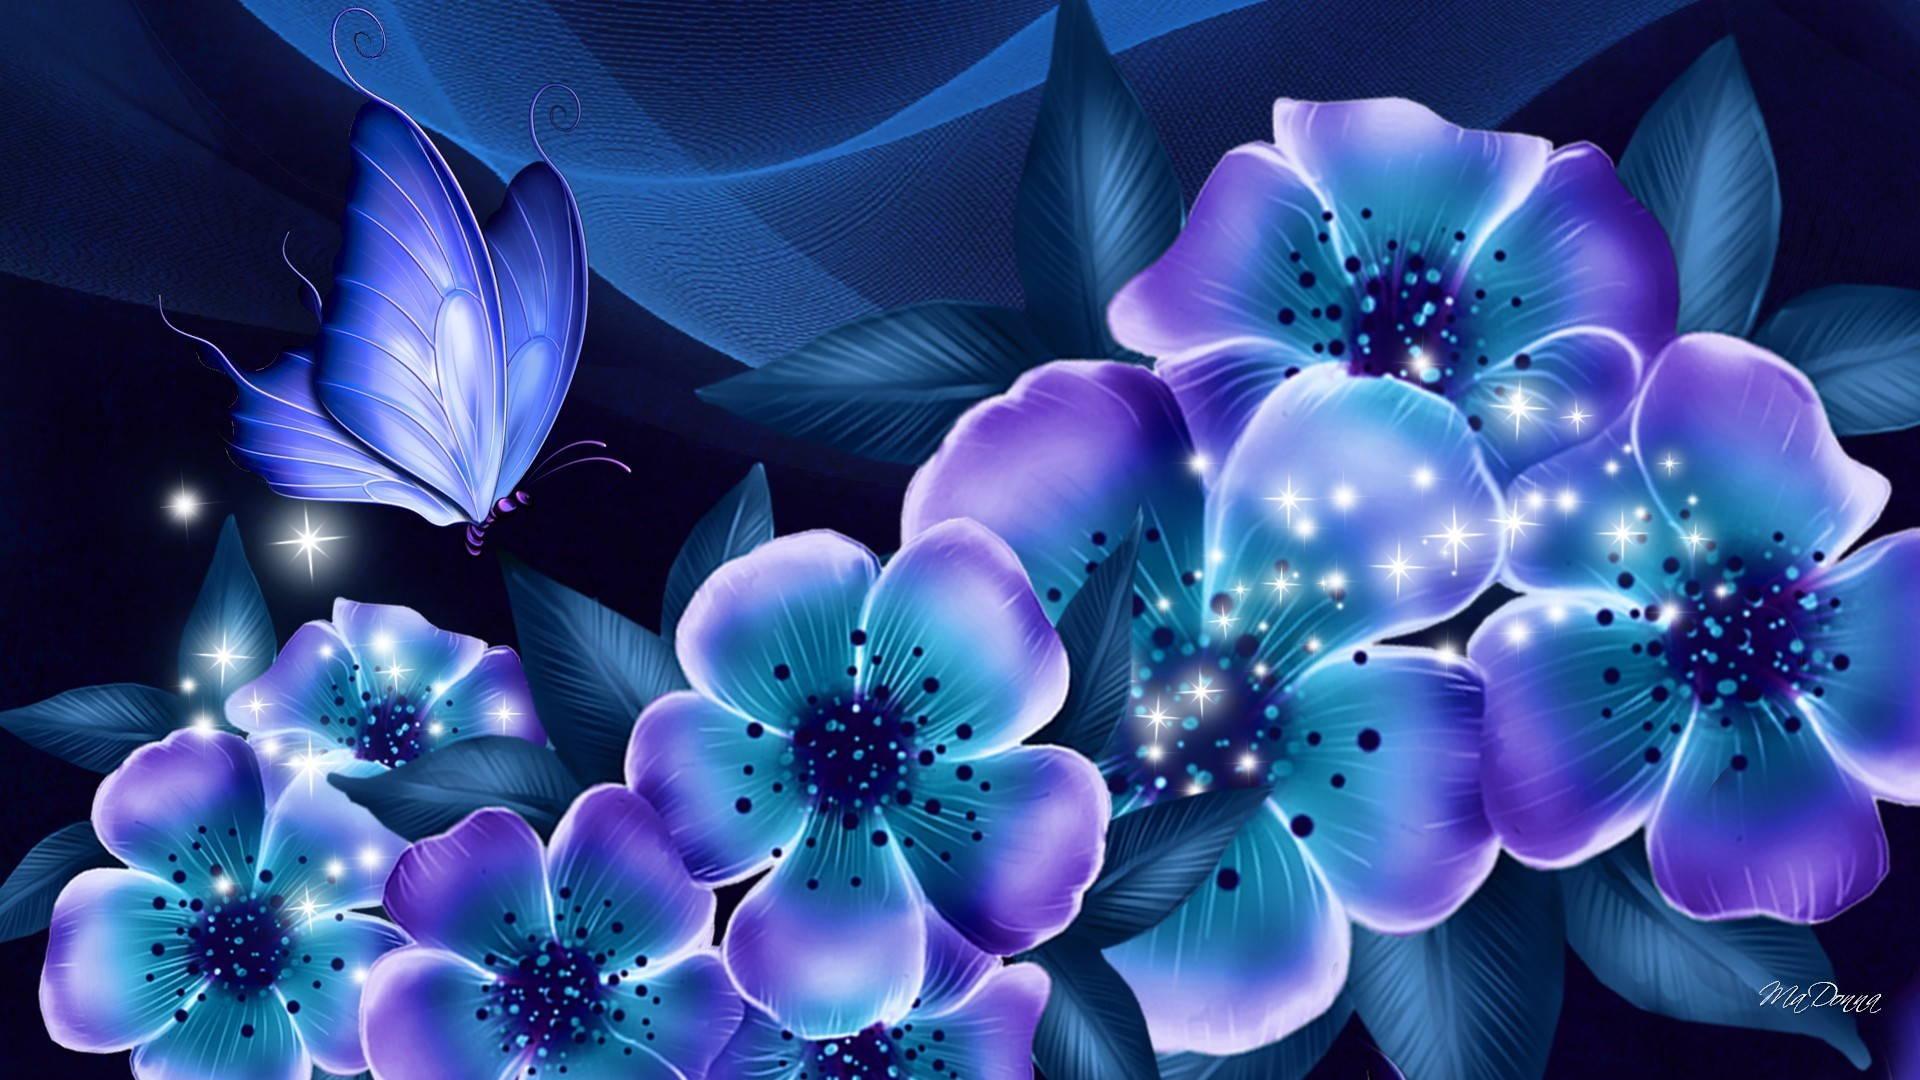 Purple Rose Background Wallpaper - Flowers Shine At Night , HD Wallpaper & Backgrounds